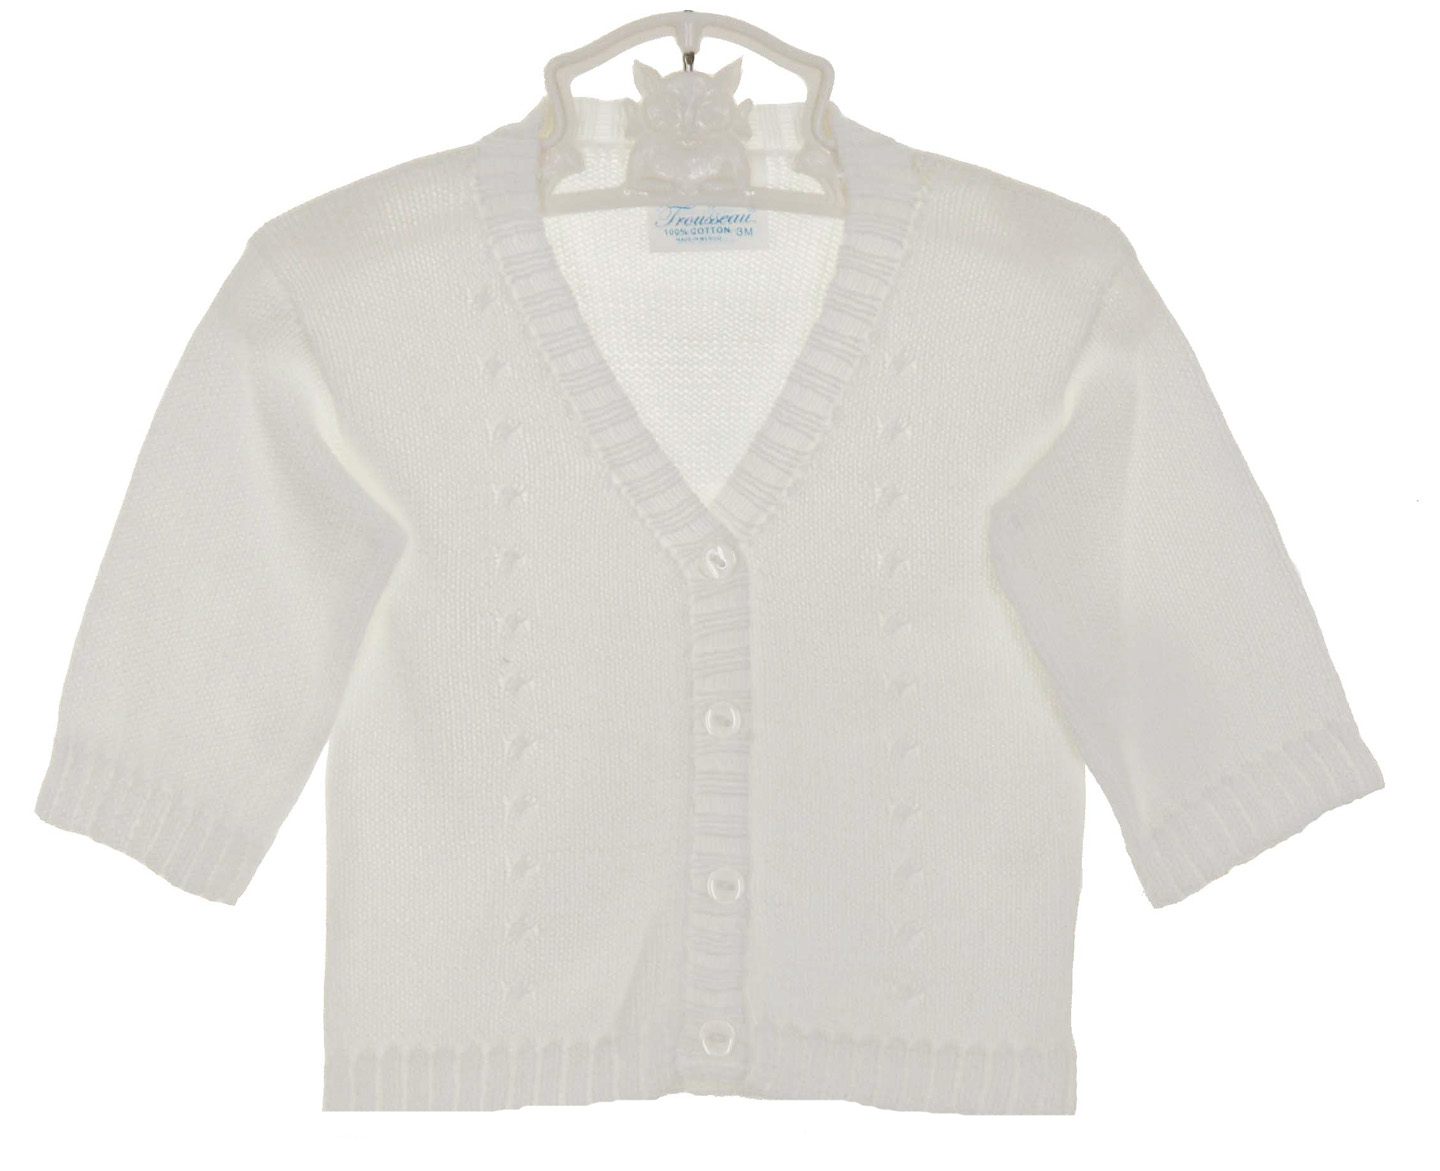 Baby's Trousseau white cotton sweater with cable design